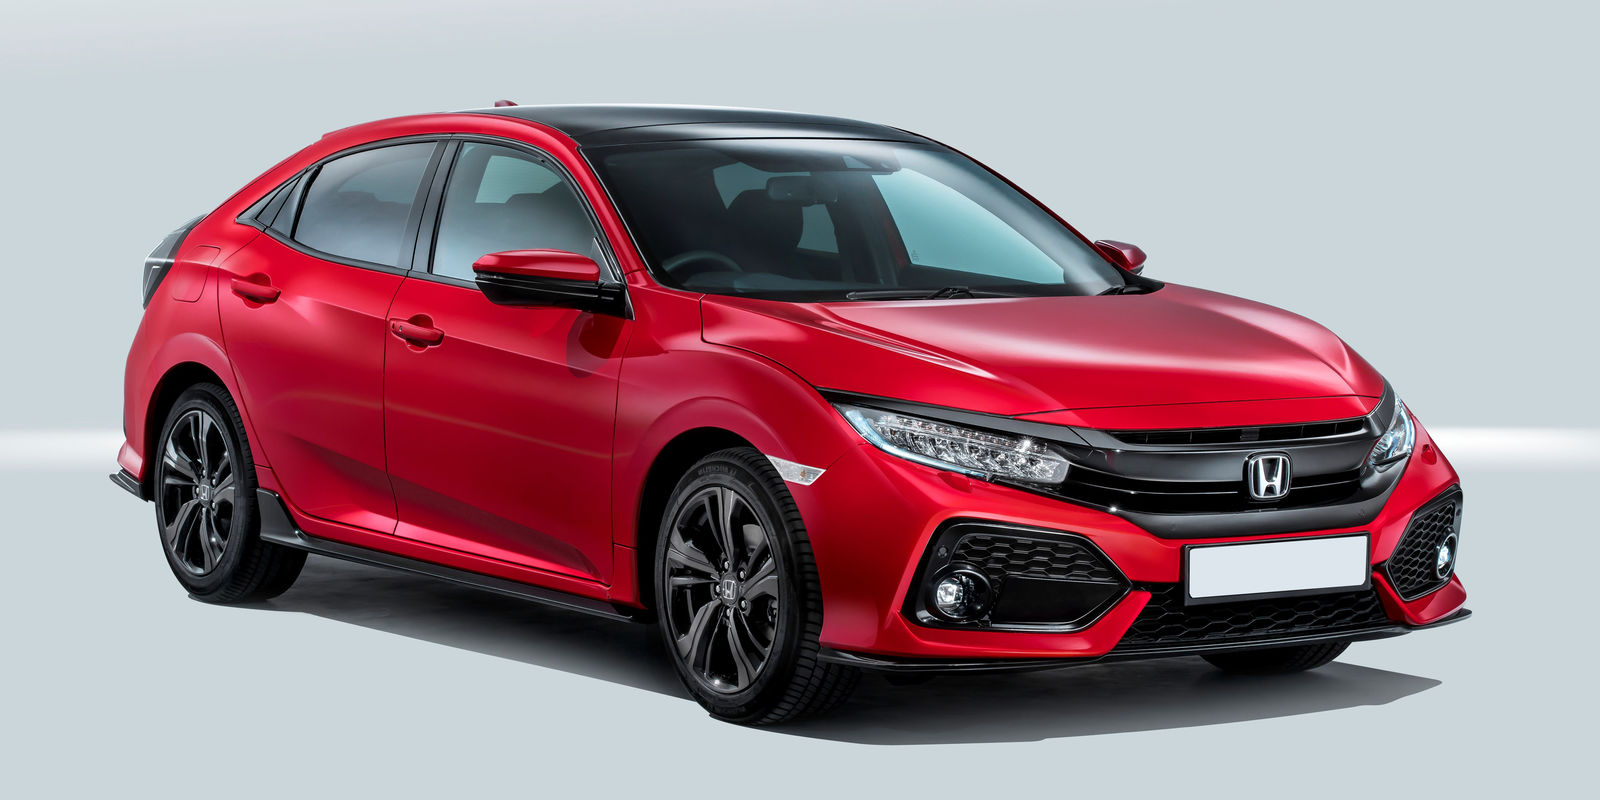 Honda civic new car price in usa 13